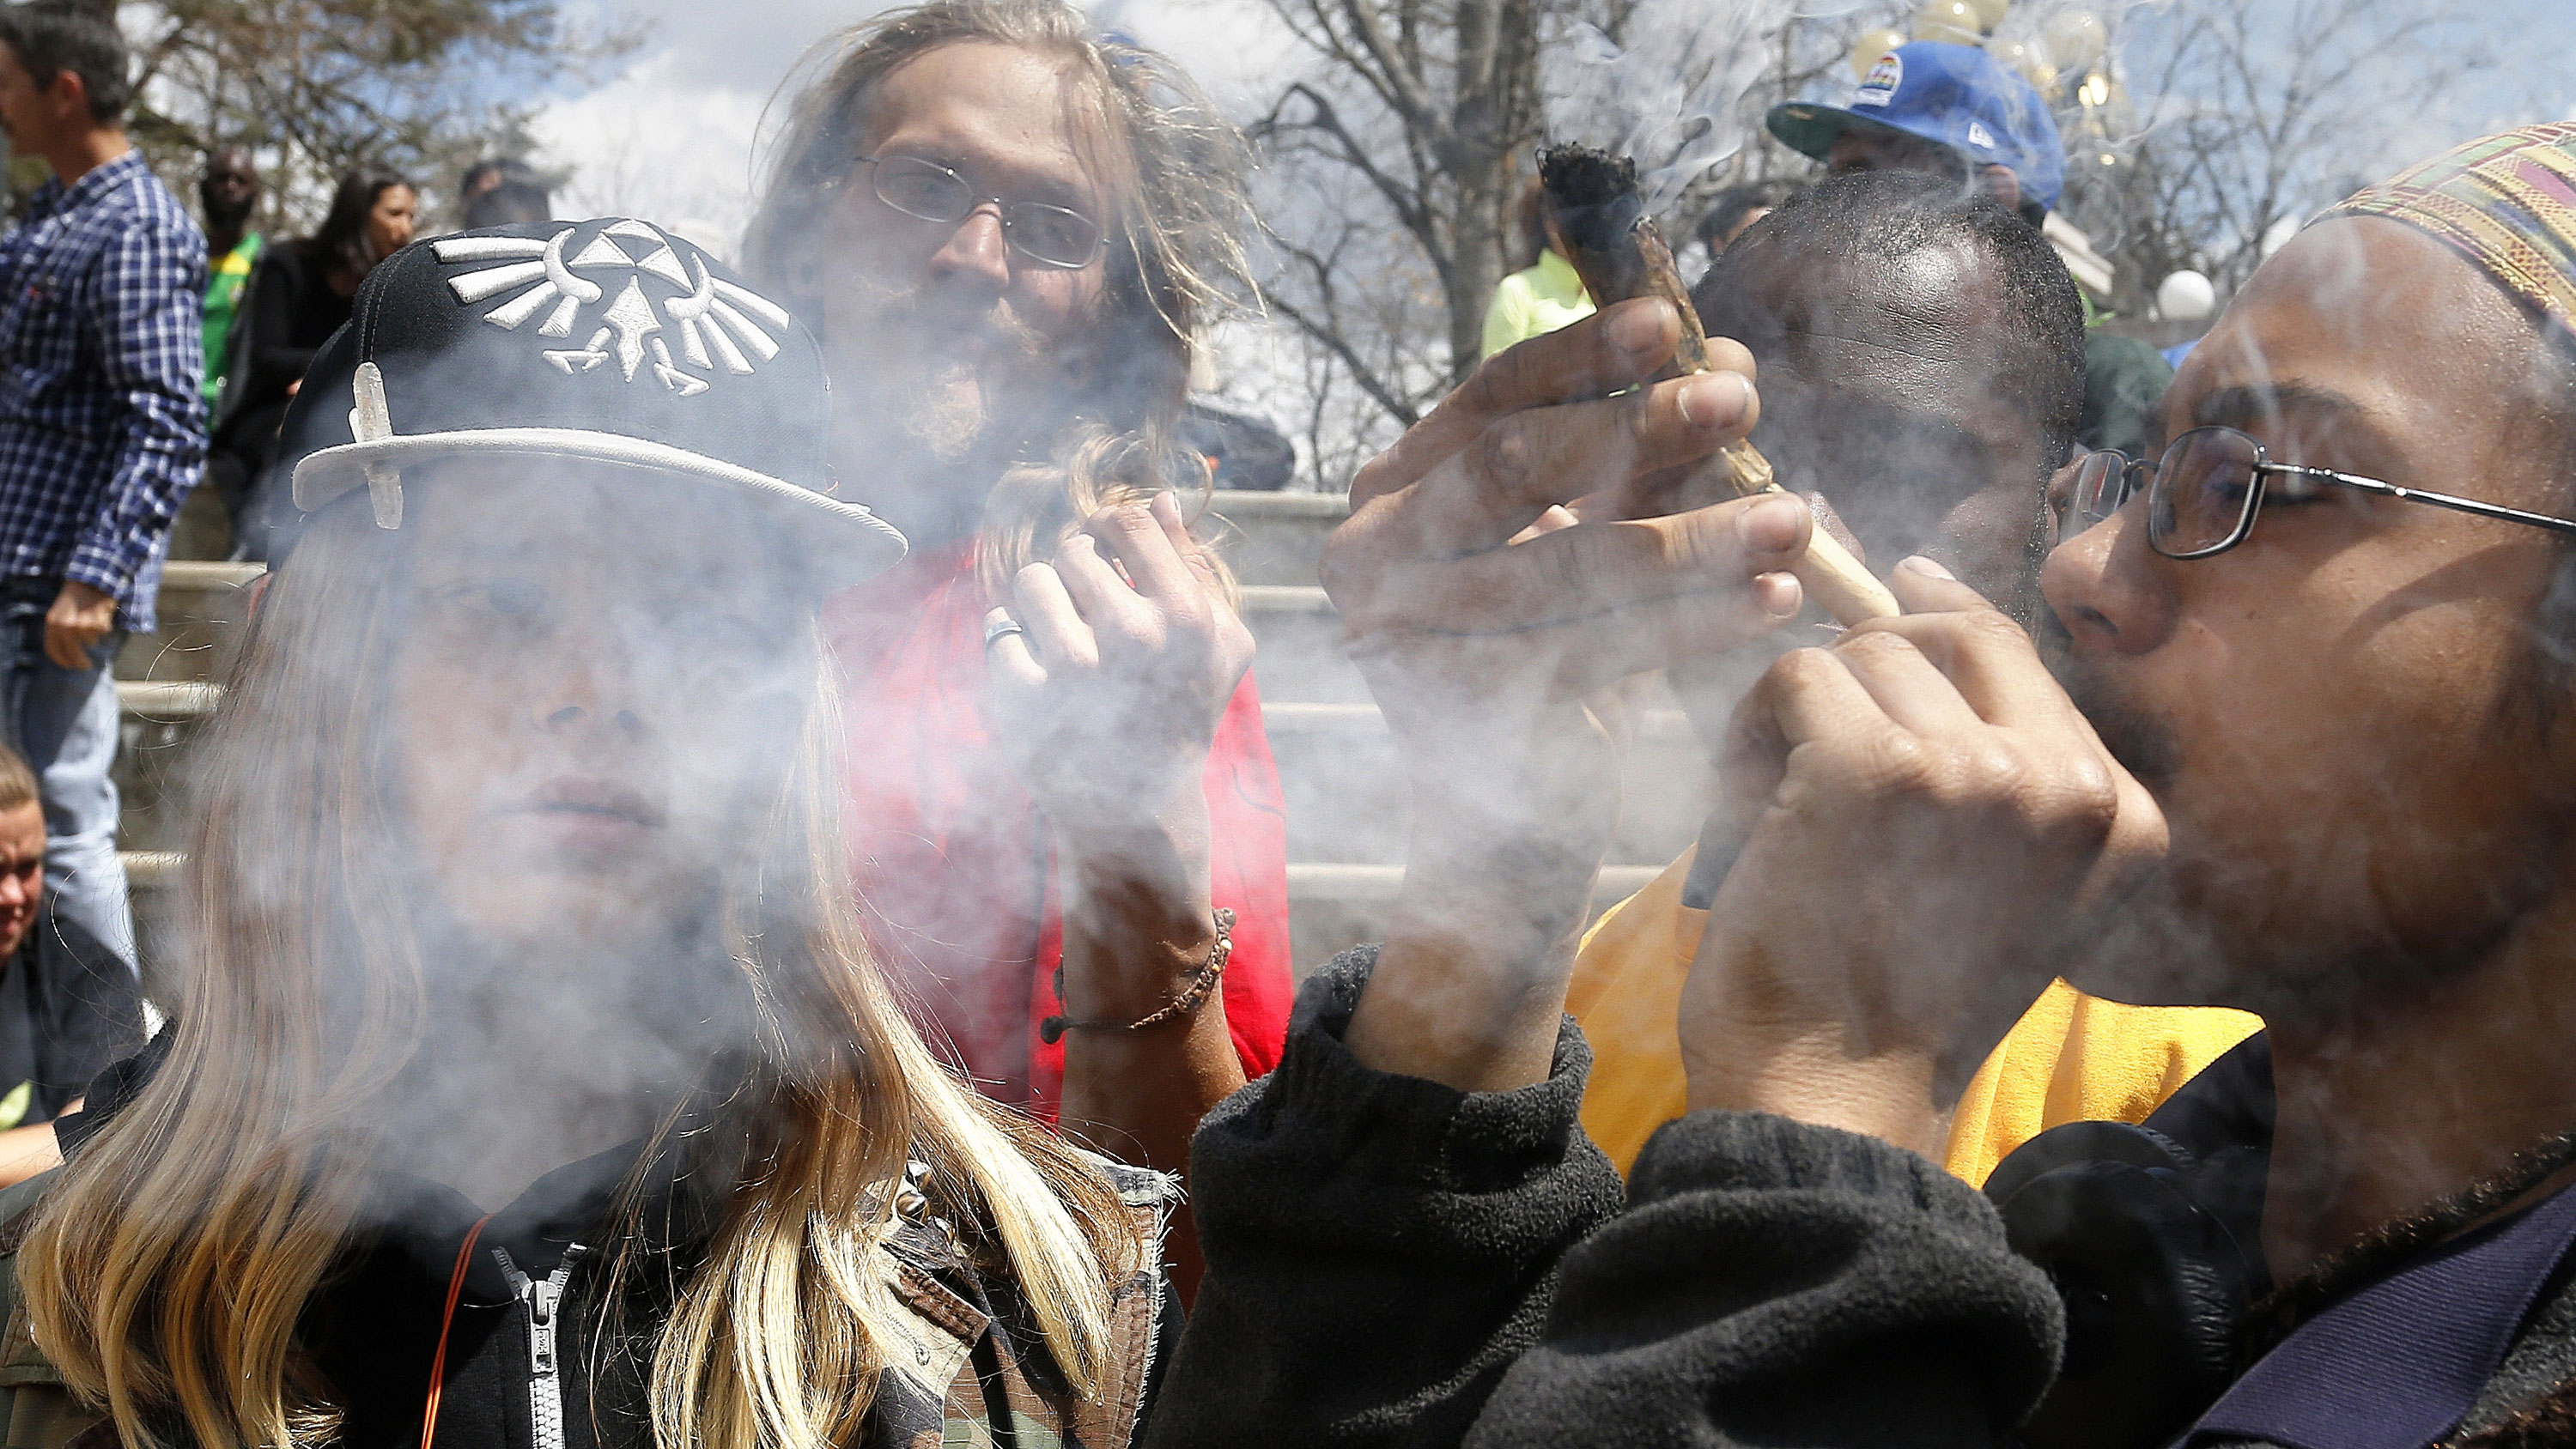 FILE - In this April 18, 2015 file photo, young partygoers listen to music and smoke marijuana during the annual 4/20 marijuana festival, in Denver's downtown Civic Center Park. Saying that weed tourists have nowhere to legally use the pot they're buying, marijuana activists in Denver have launched a ballot initative that would ask voters whether businesses open only to people 21 and older should be permitted to allow pot use. (AP Photo/Brennan Linsley, File)